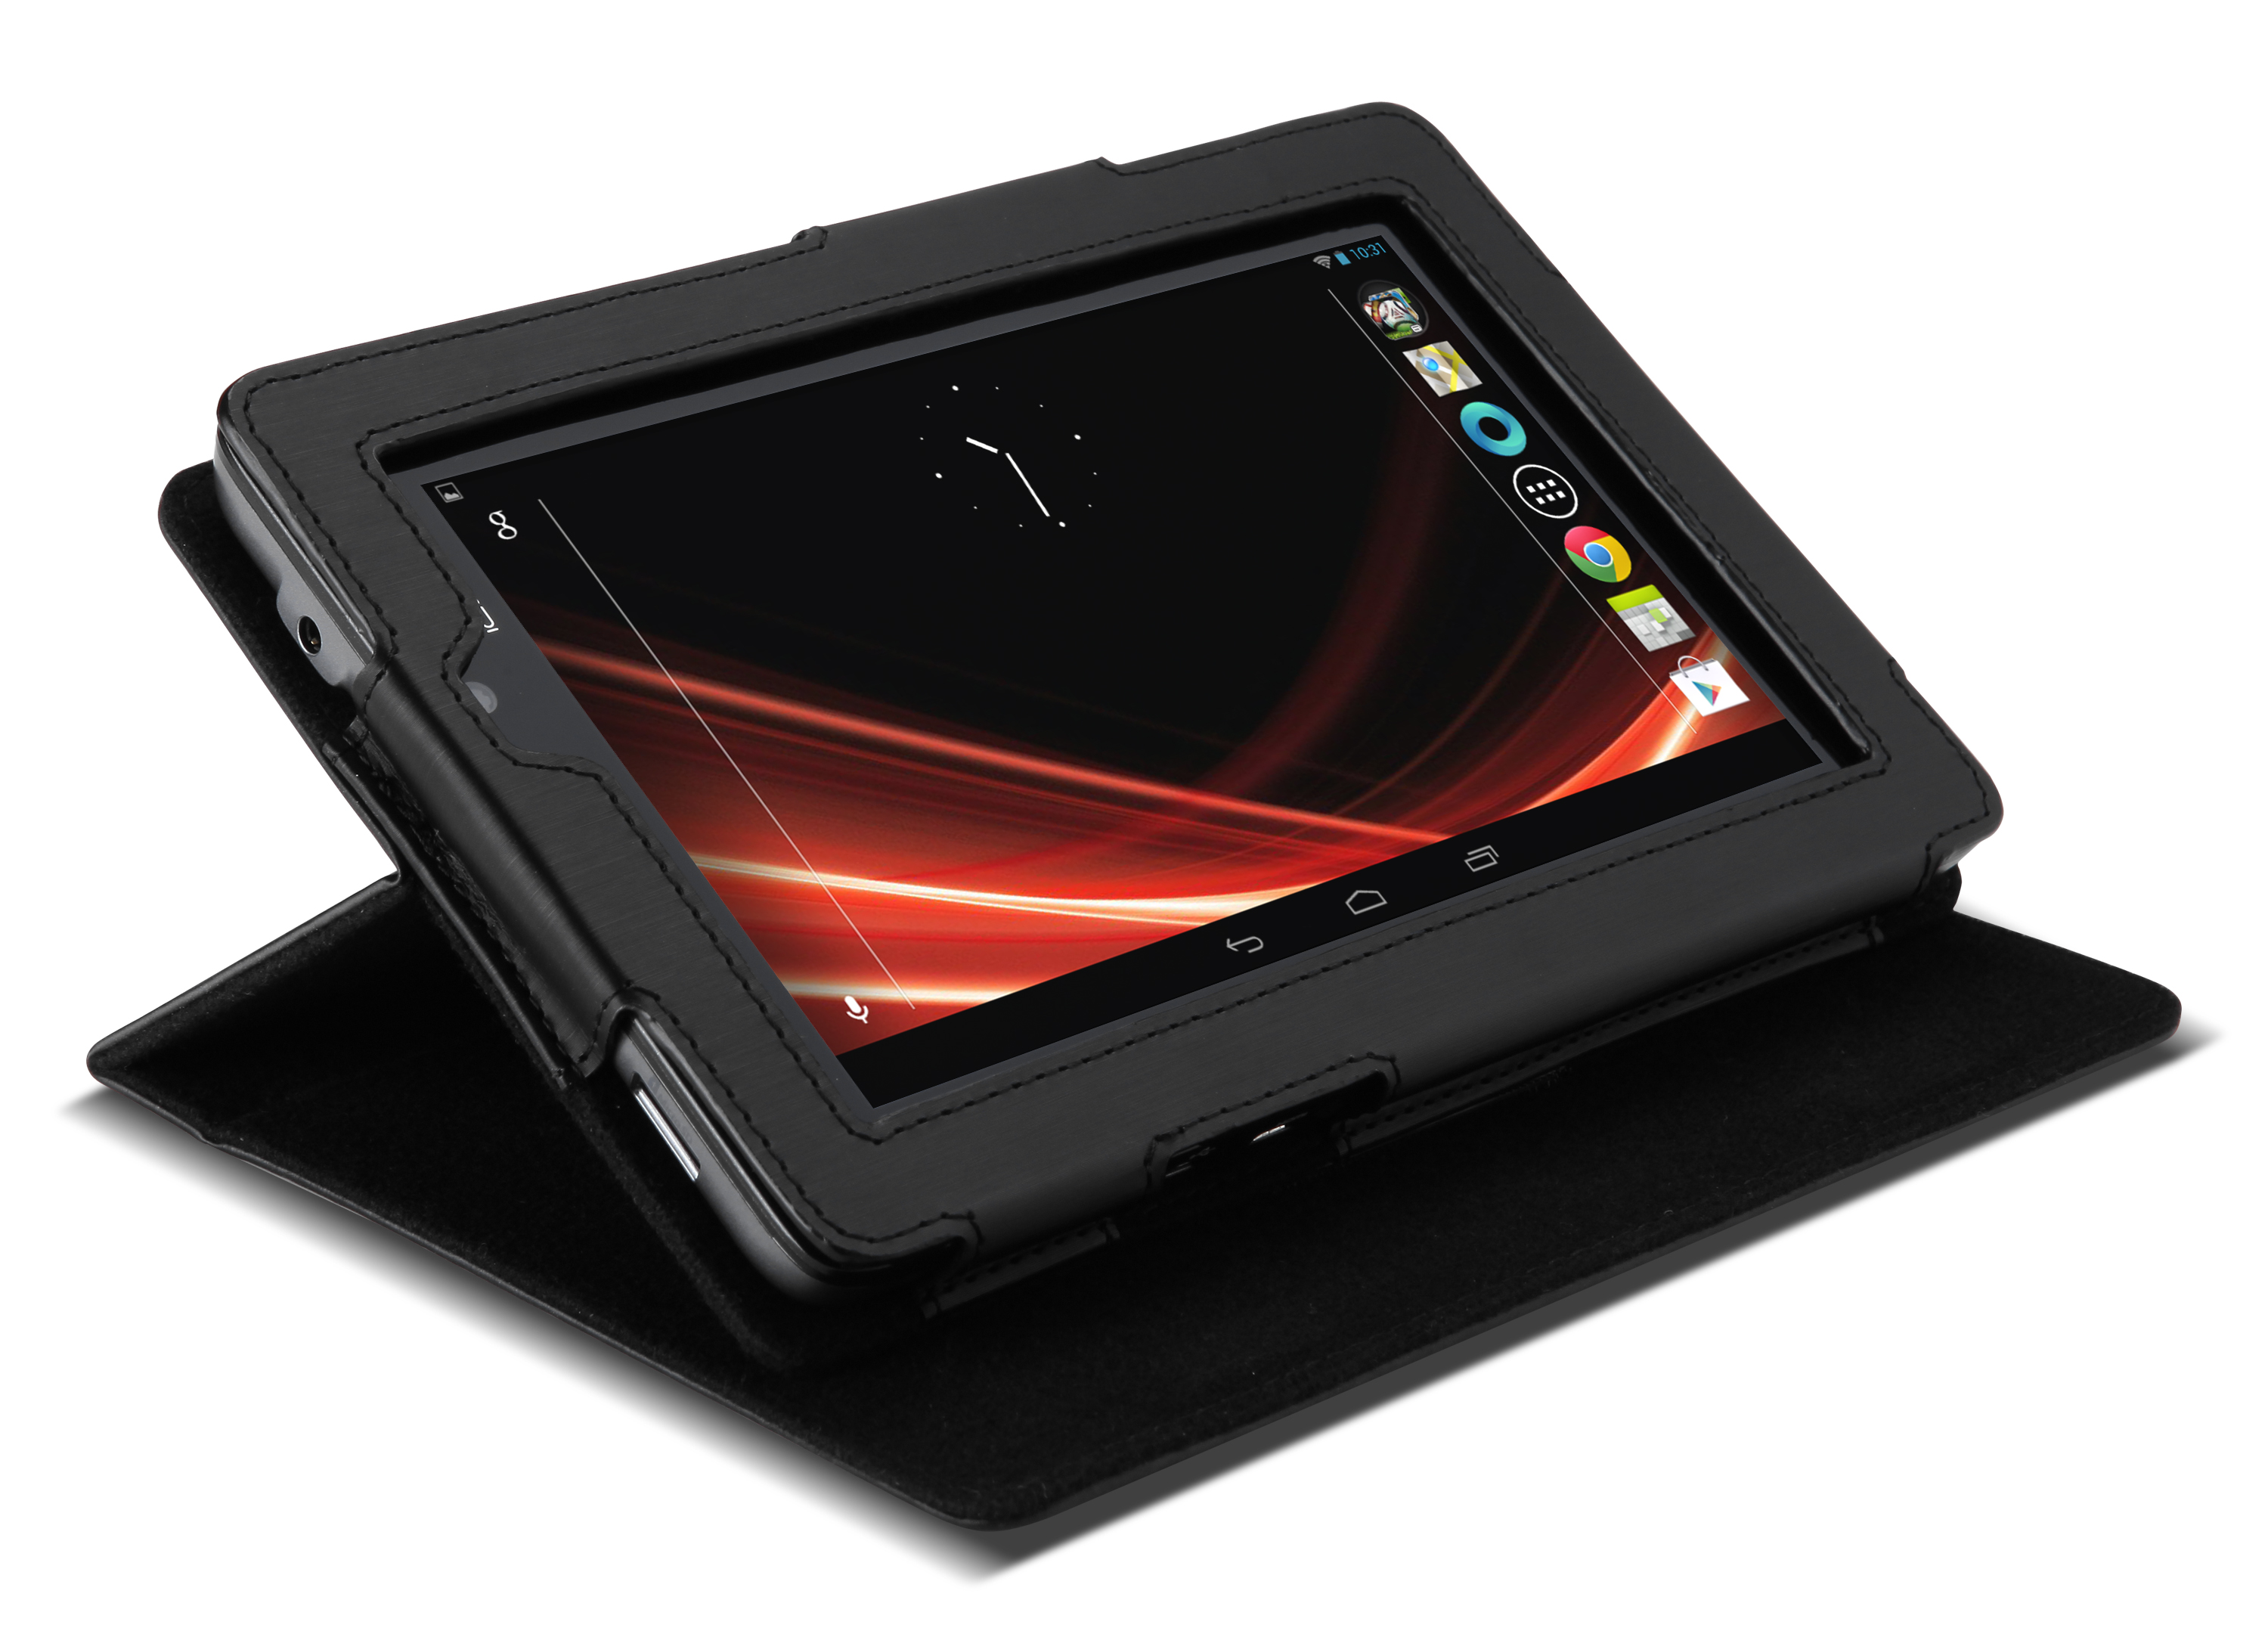 """Acer Iconia A110 Price, Order or Compare to Other 7"""" Tablets"""